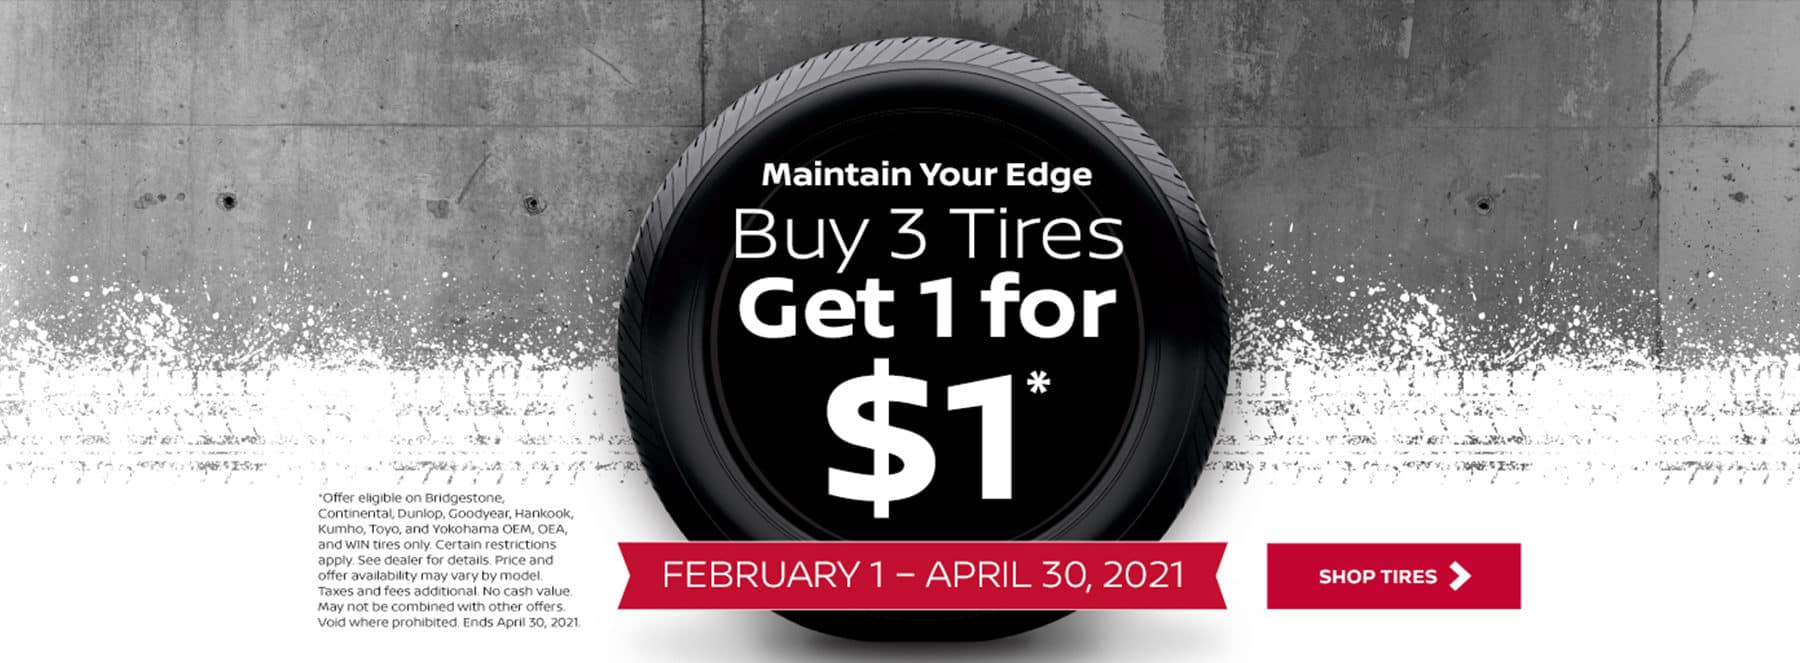 Nissan B3 Tire Offer Feb21